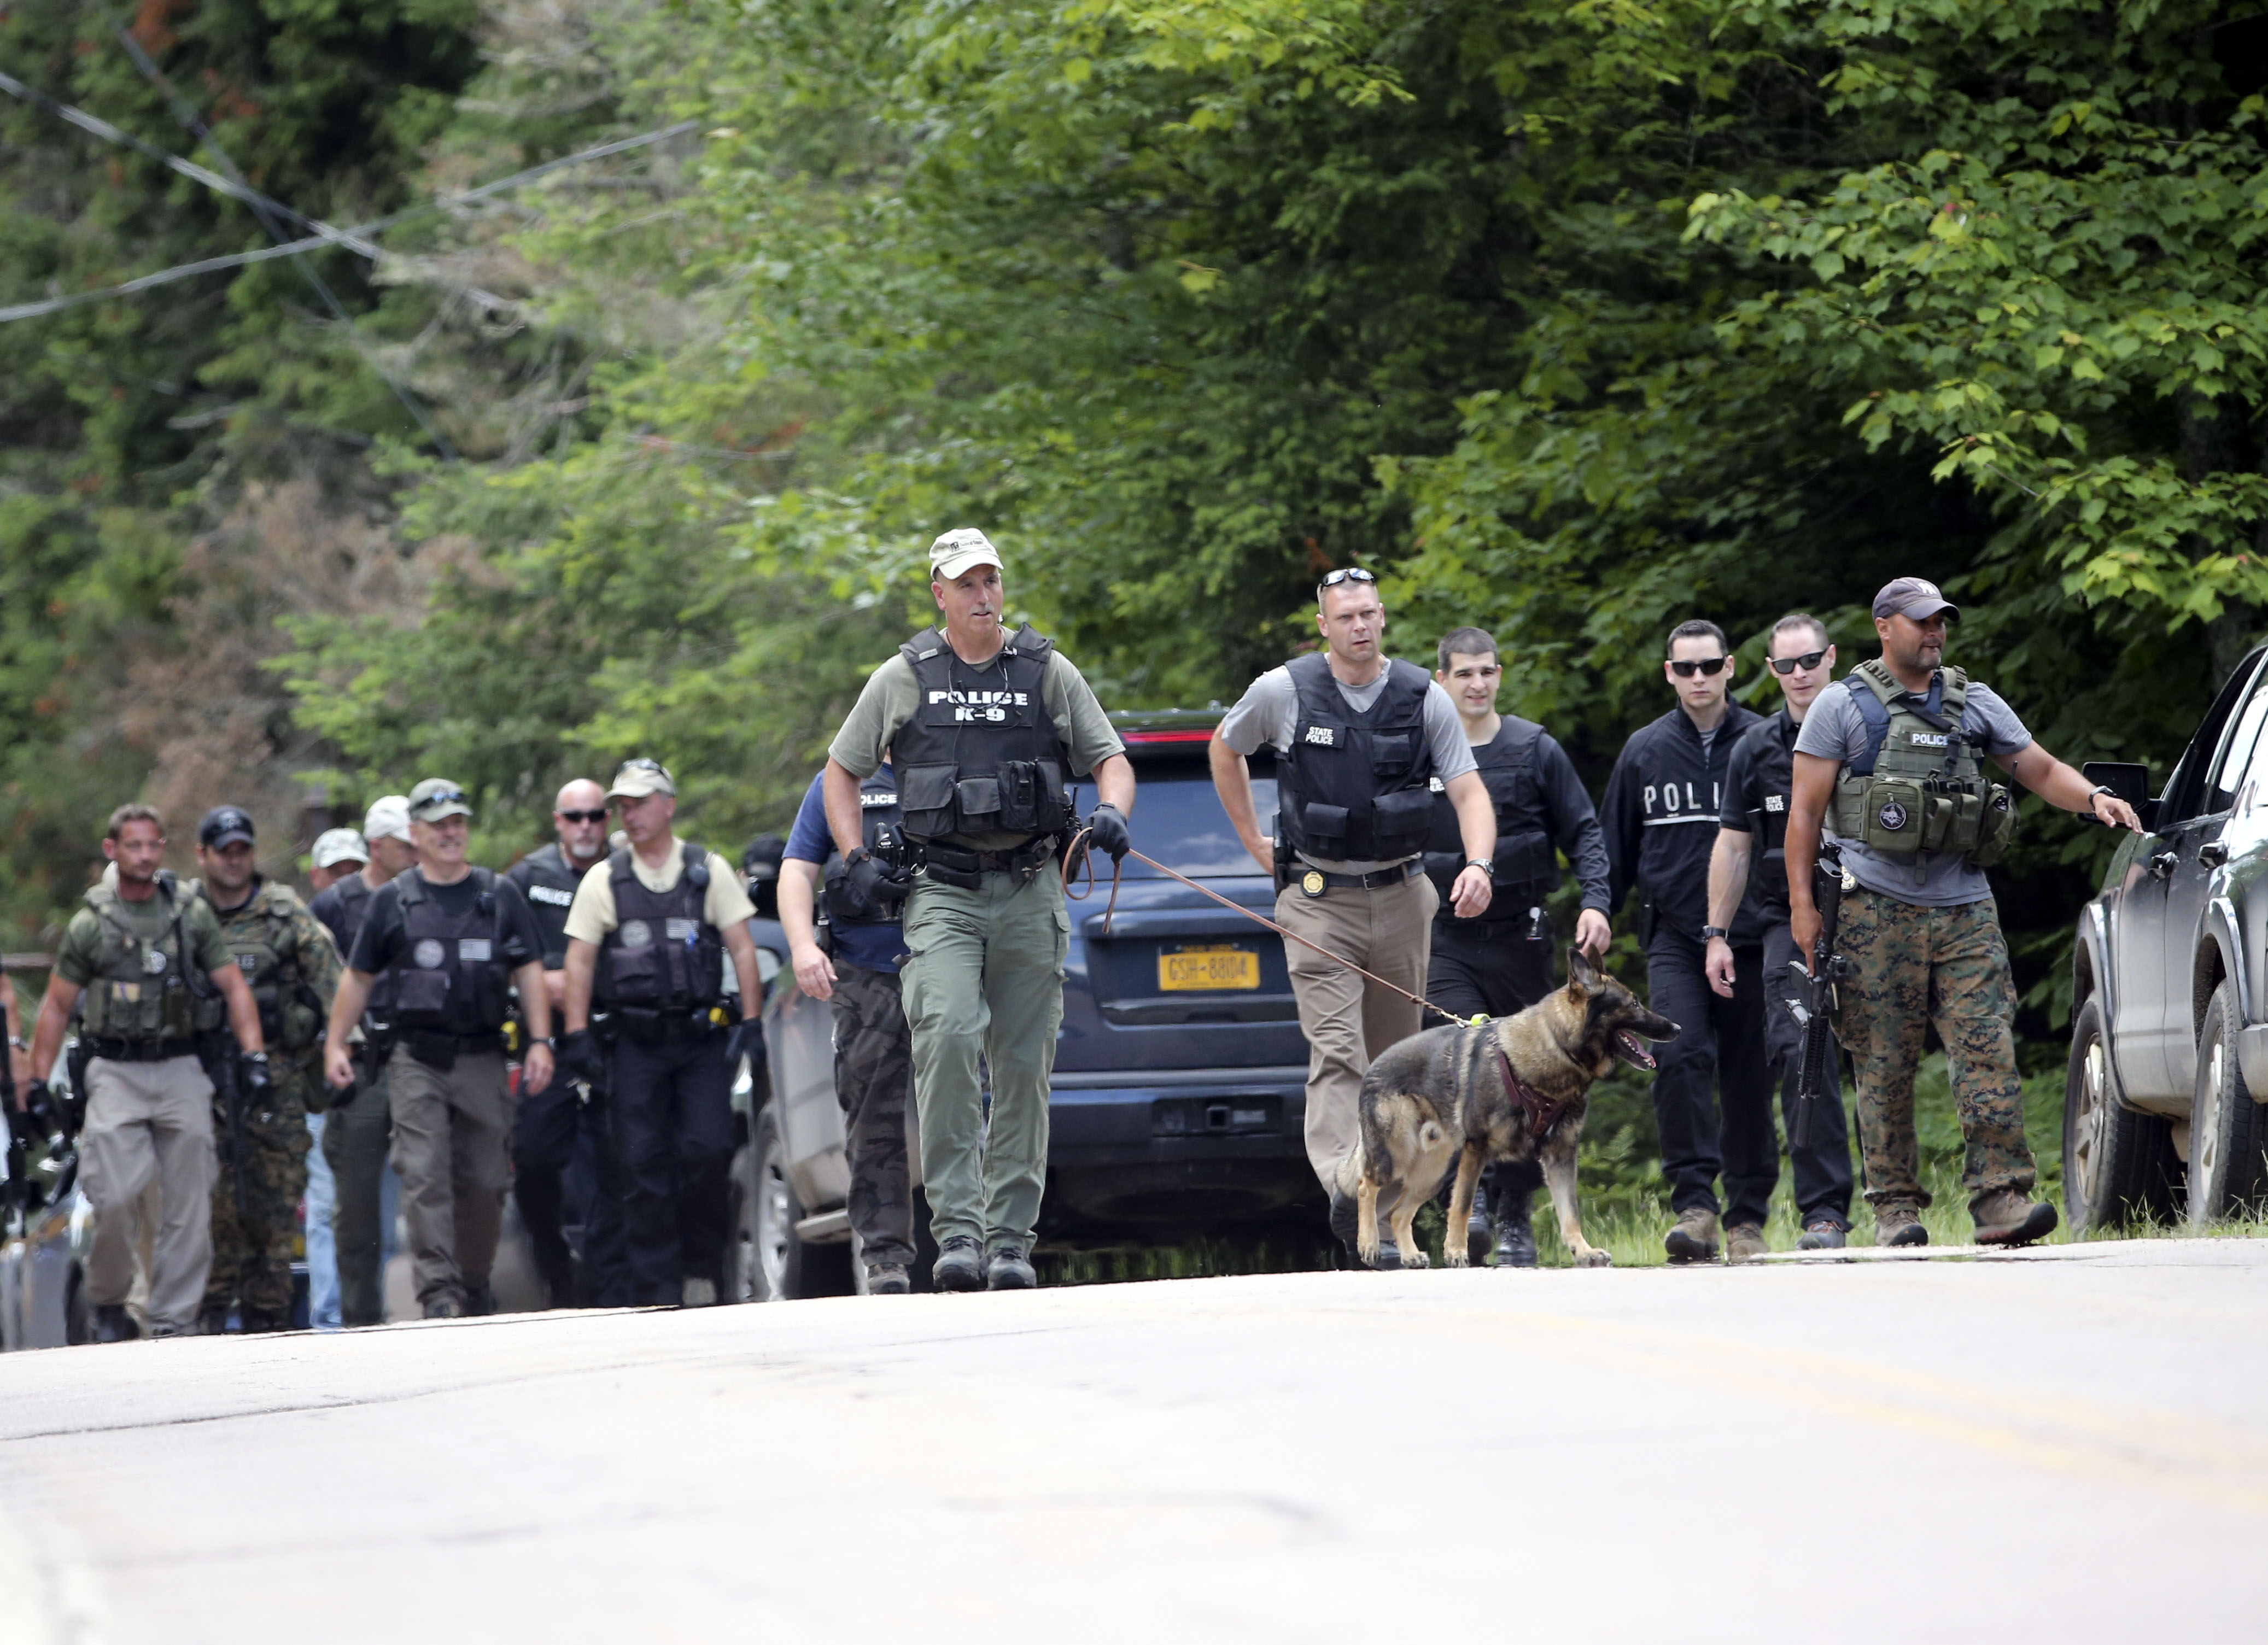 Law enforcement officers walk along a road as the search continues for two escaped prisoners from the Clinton Correctional Facility in Dannemora, on Monday, June 22, 2015